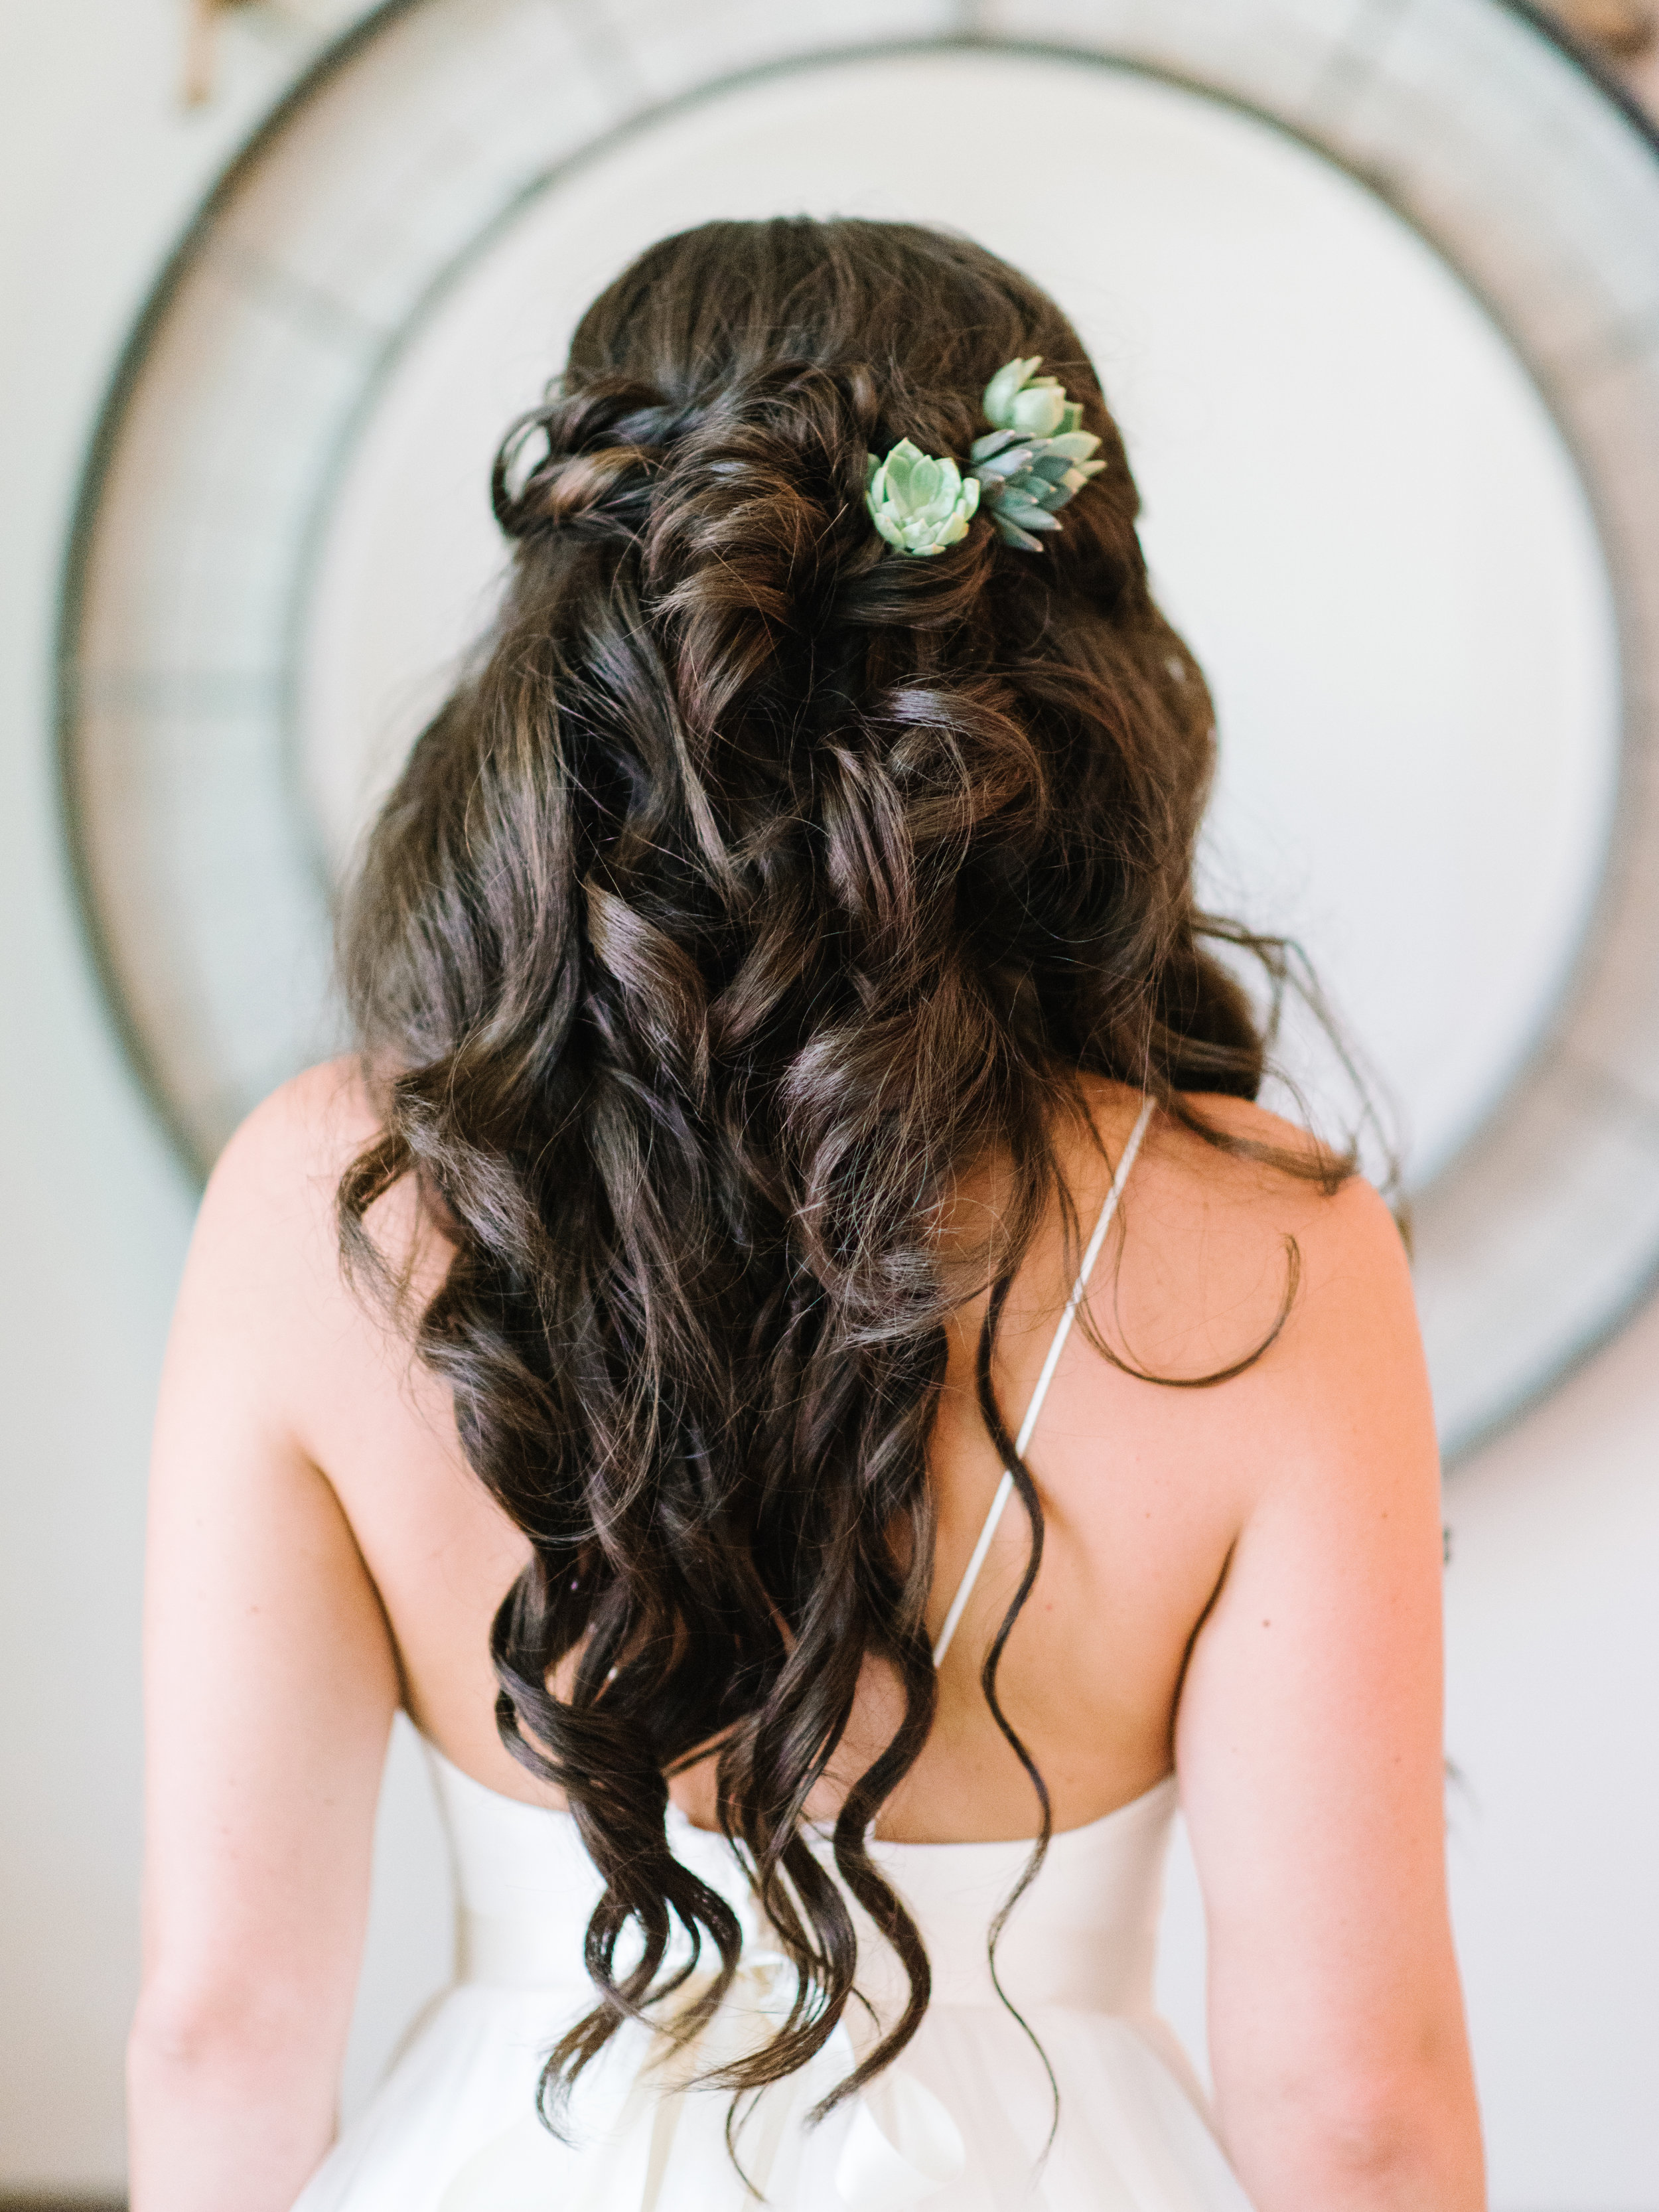 Myrtle Beach bride's half-up hairstyle by PaperDolls Wedding Hair & Makeup  //  A Lowcountry Wedding Magazine & Blog